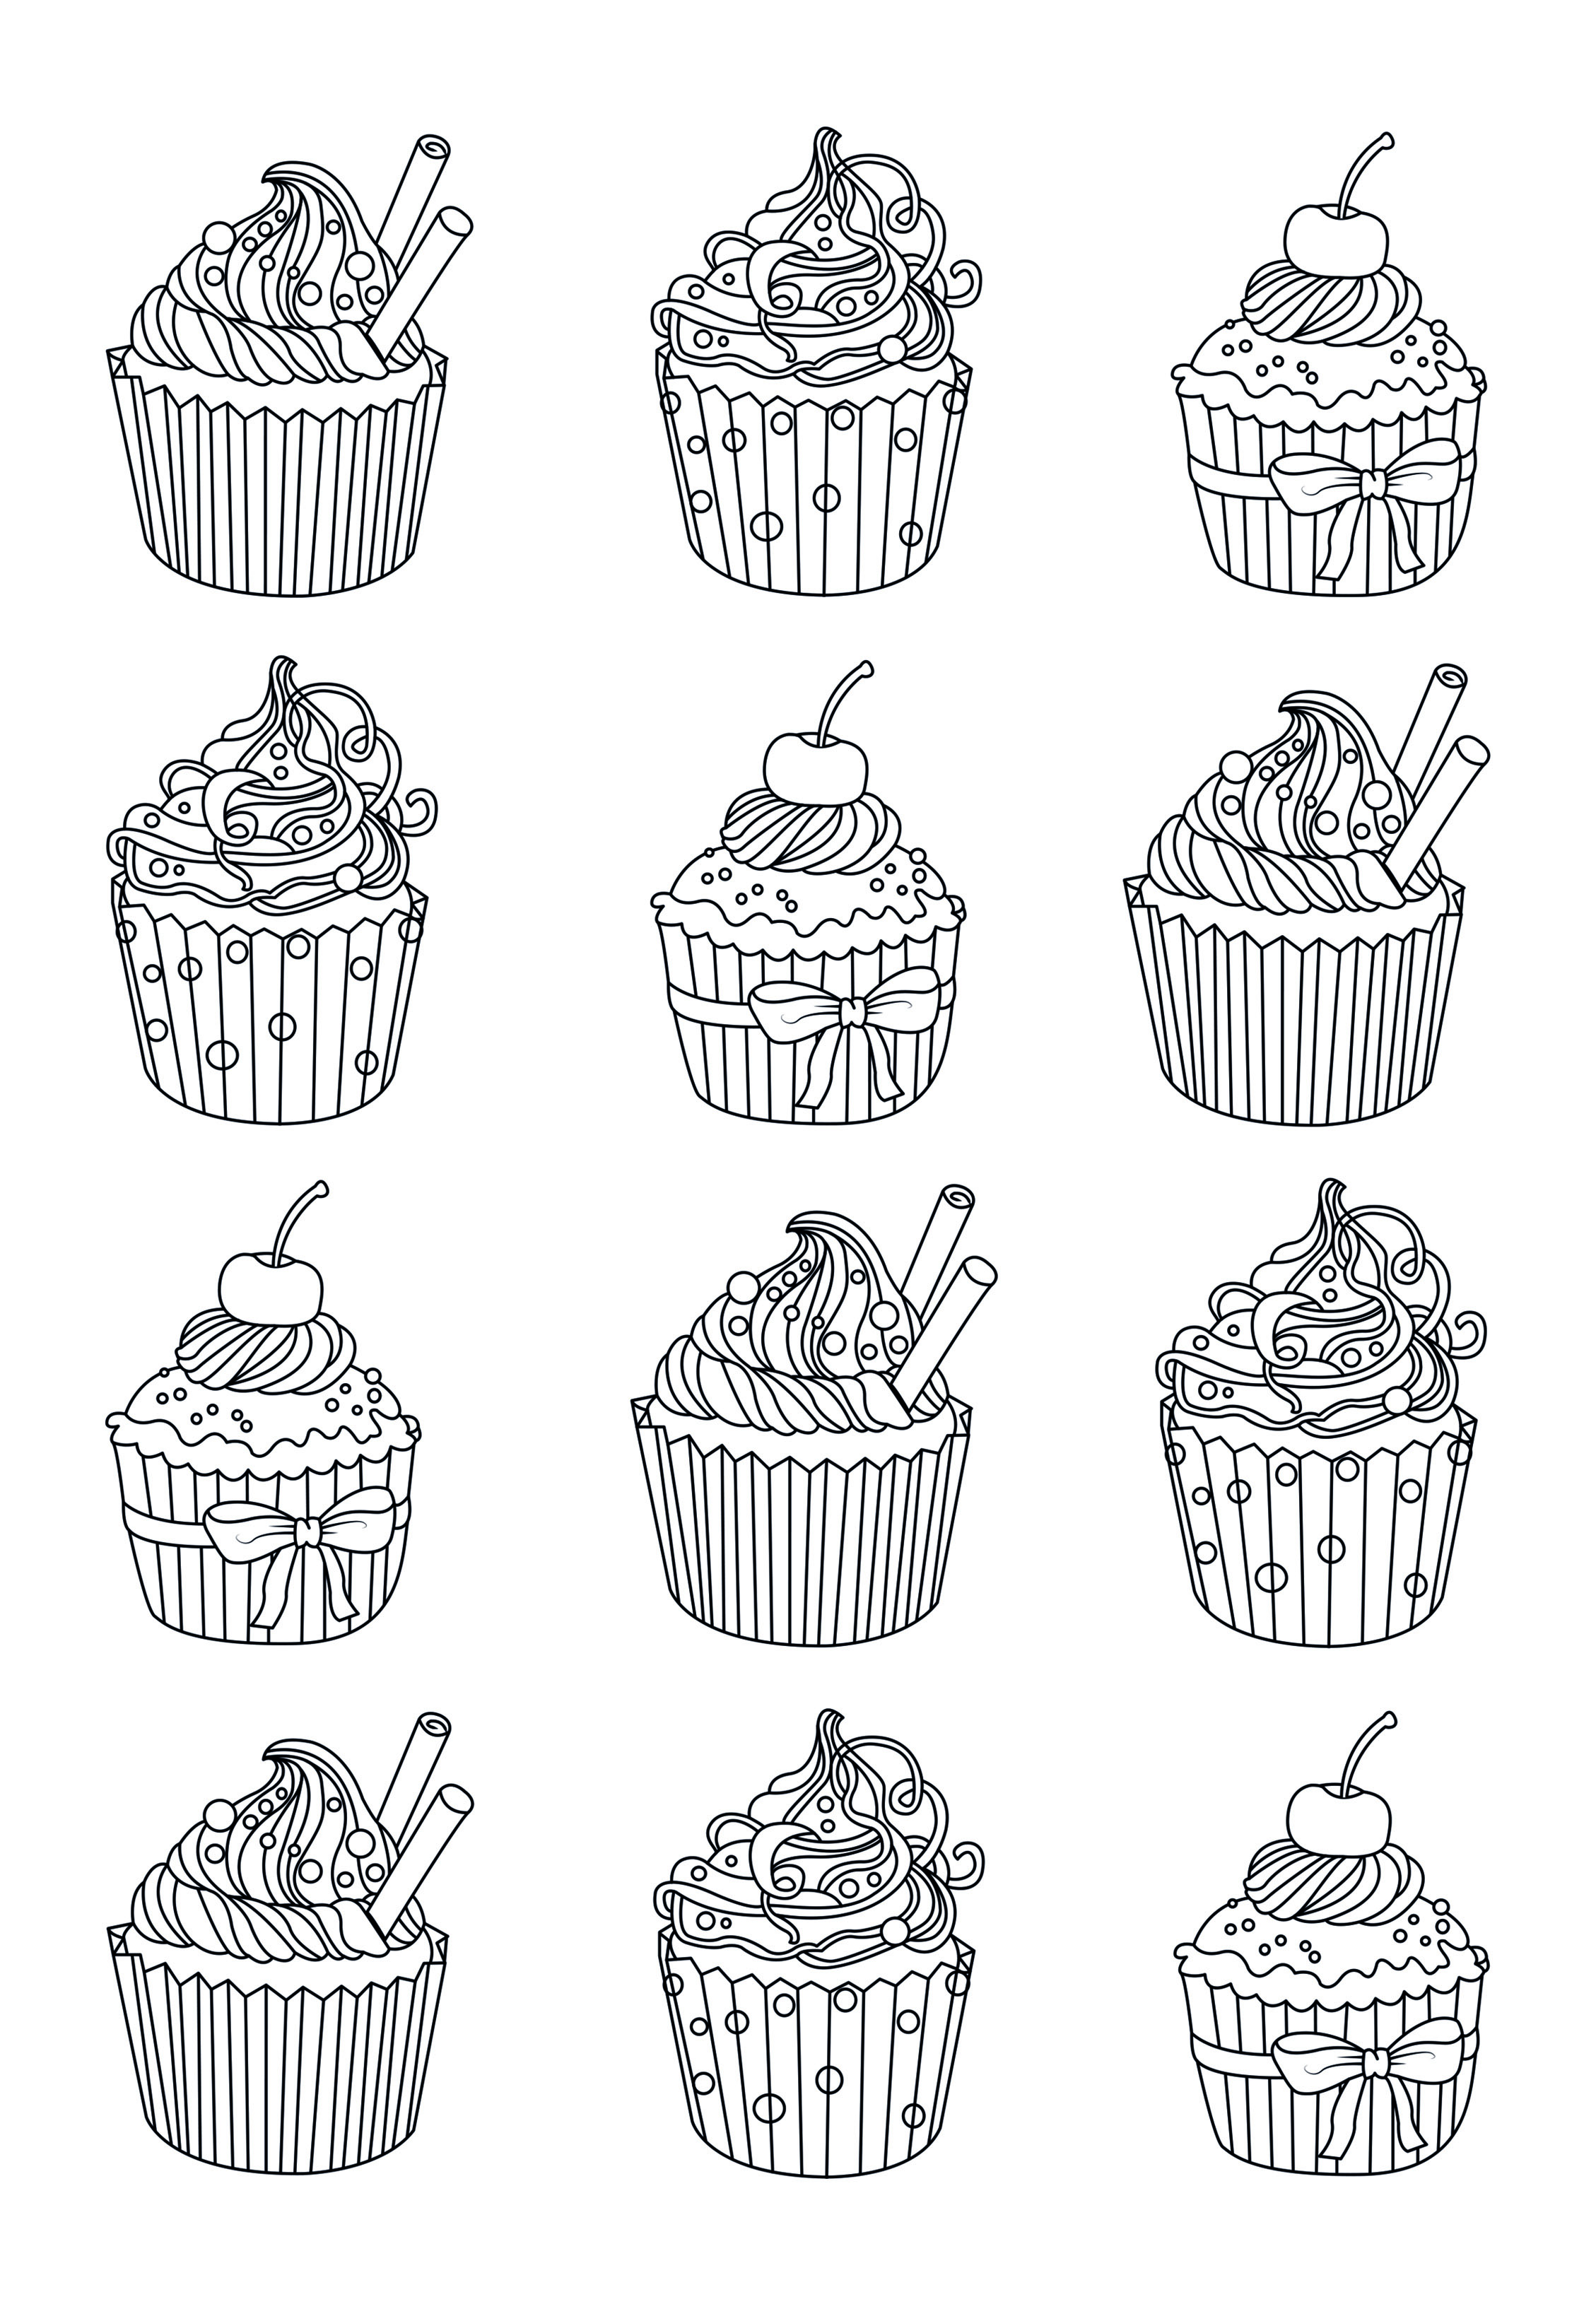 Yum Many Coloring Page Easy To Colors And Eat Print